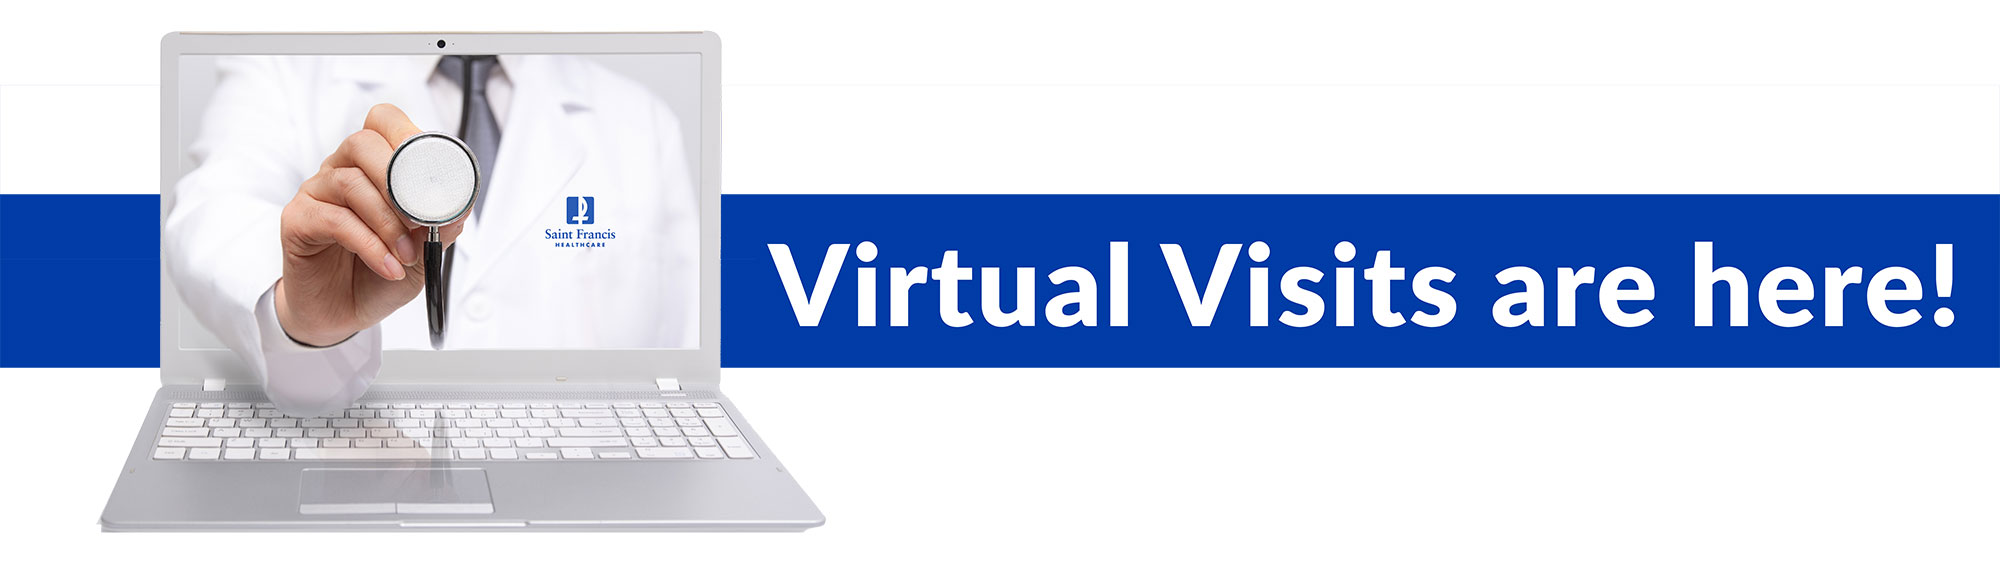 Virtual visits are here!